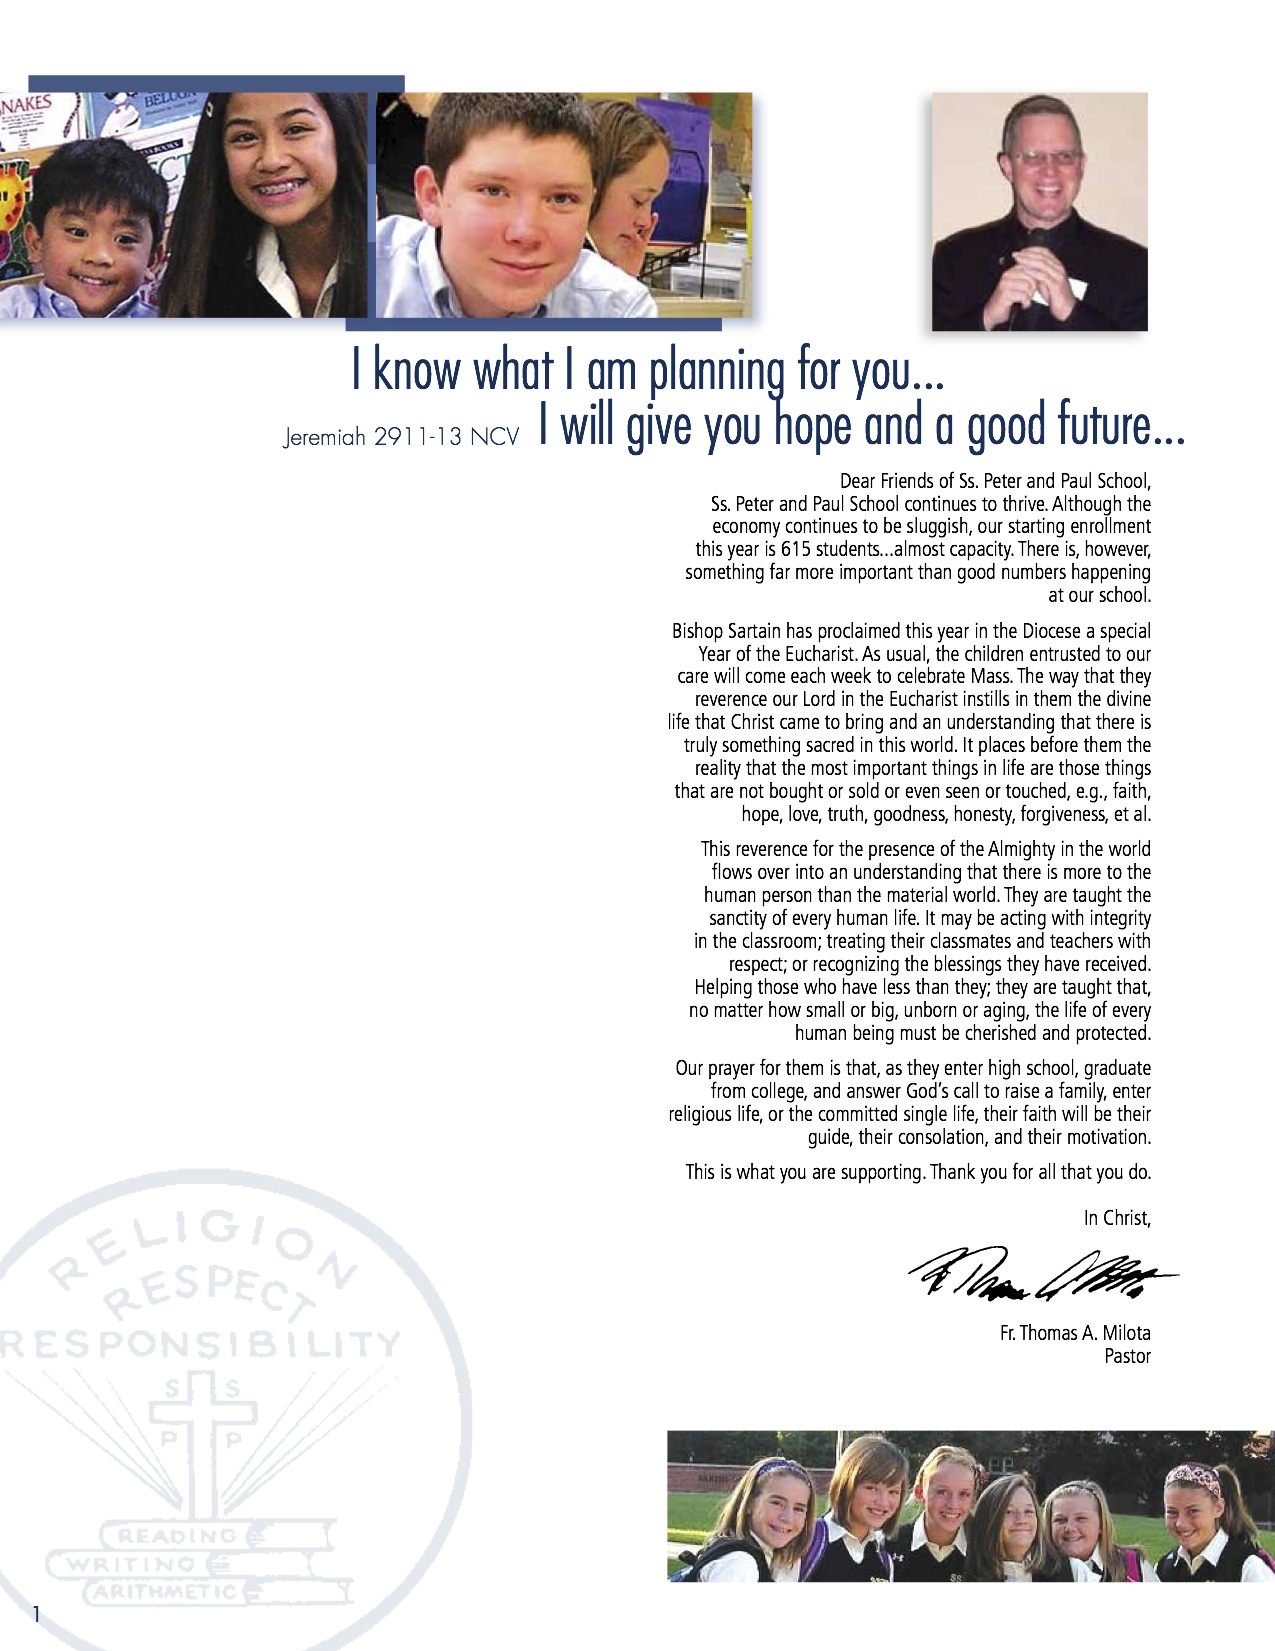 AF Annual Report SS Peter and Paul SAMPLE2